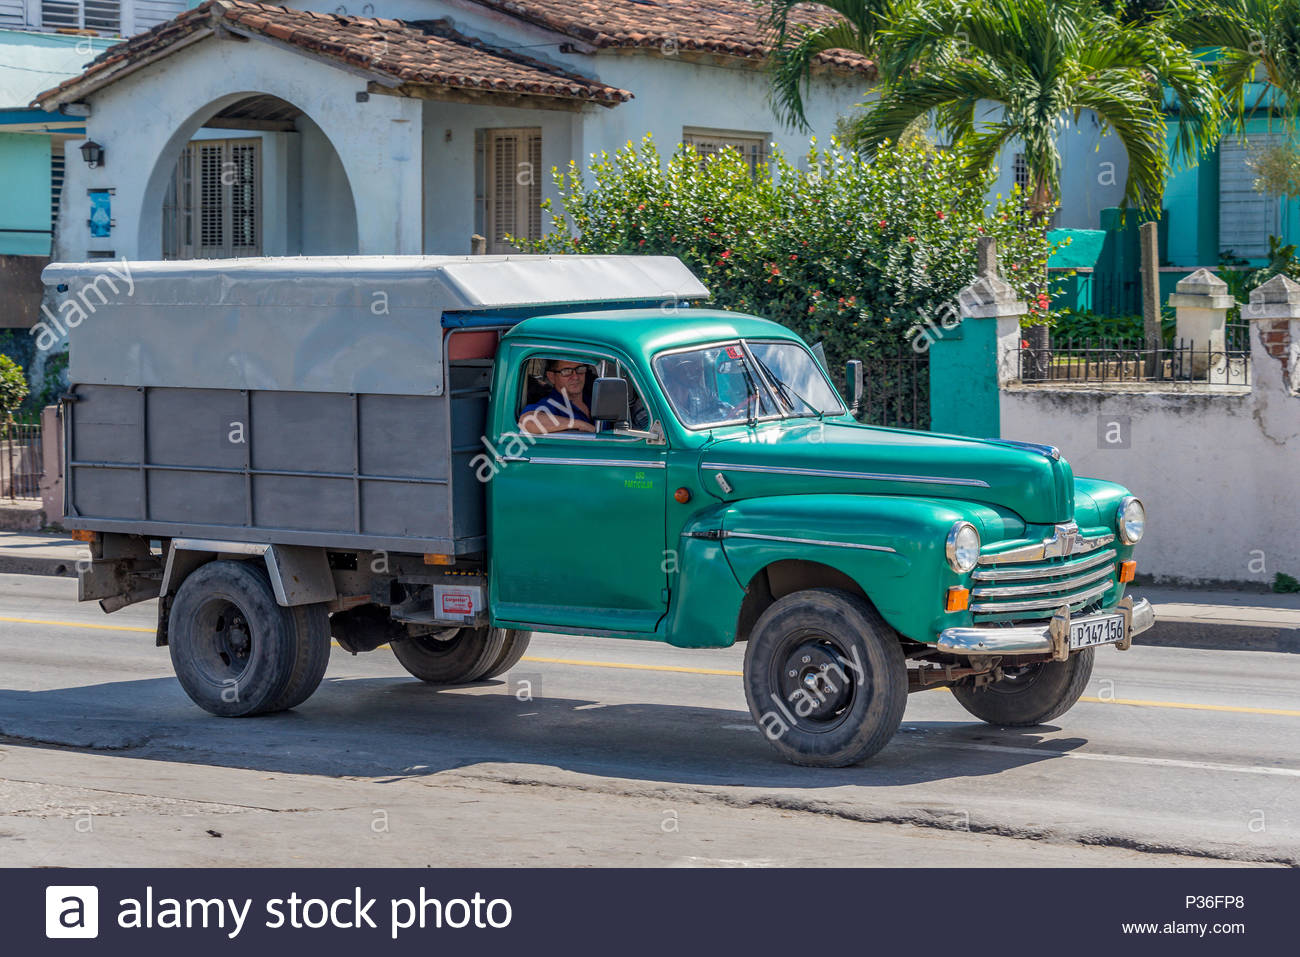 Vintage American small struck in working condition in the streets of Cuba.Obsolete cars have solved many transportation needs and they are also a safe Stock Photo